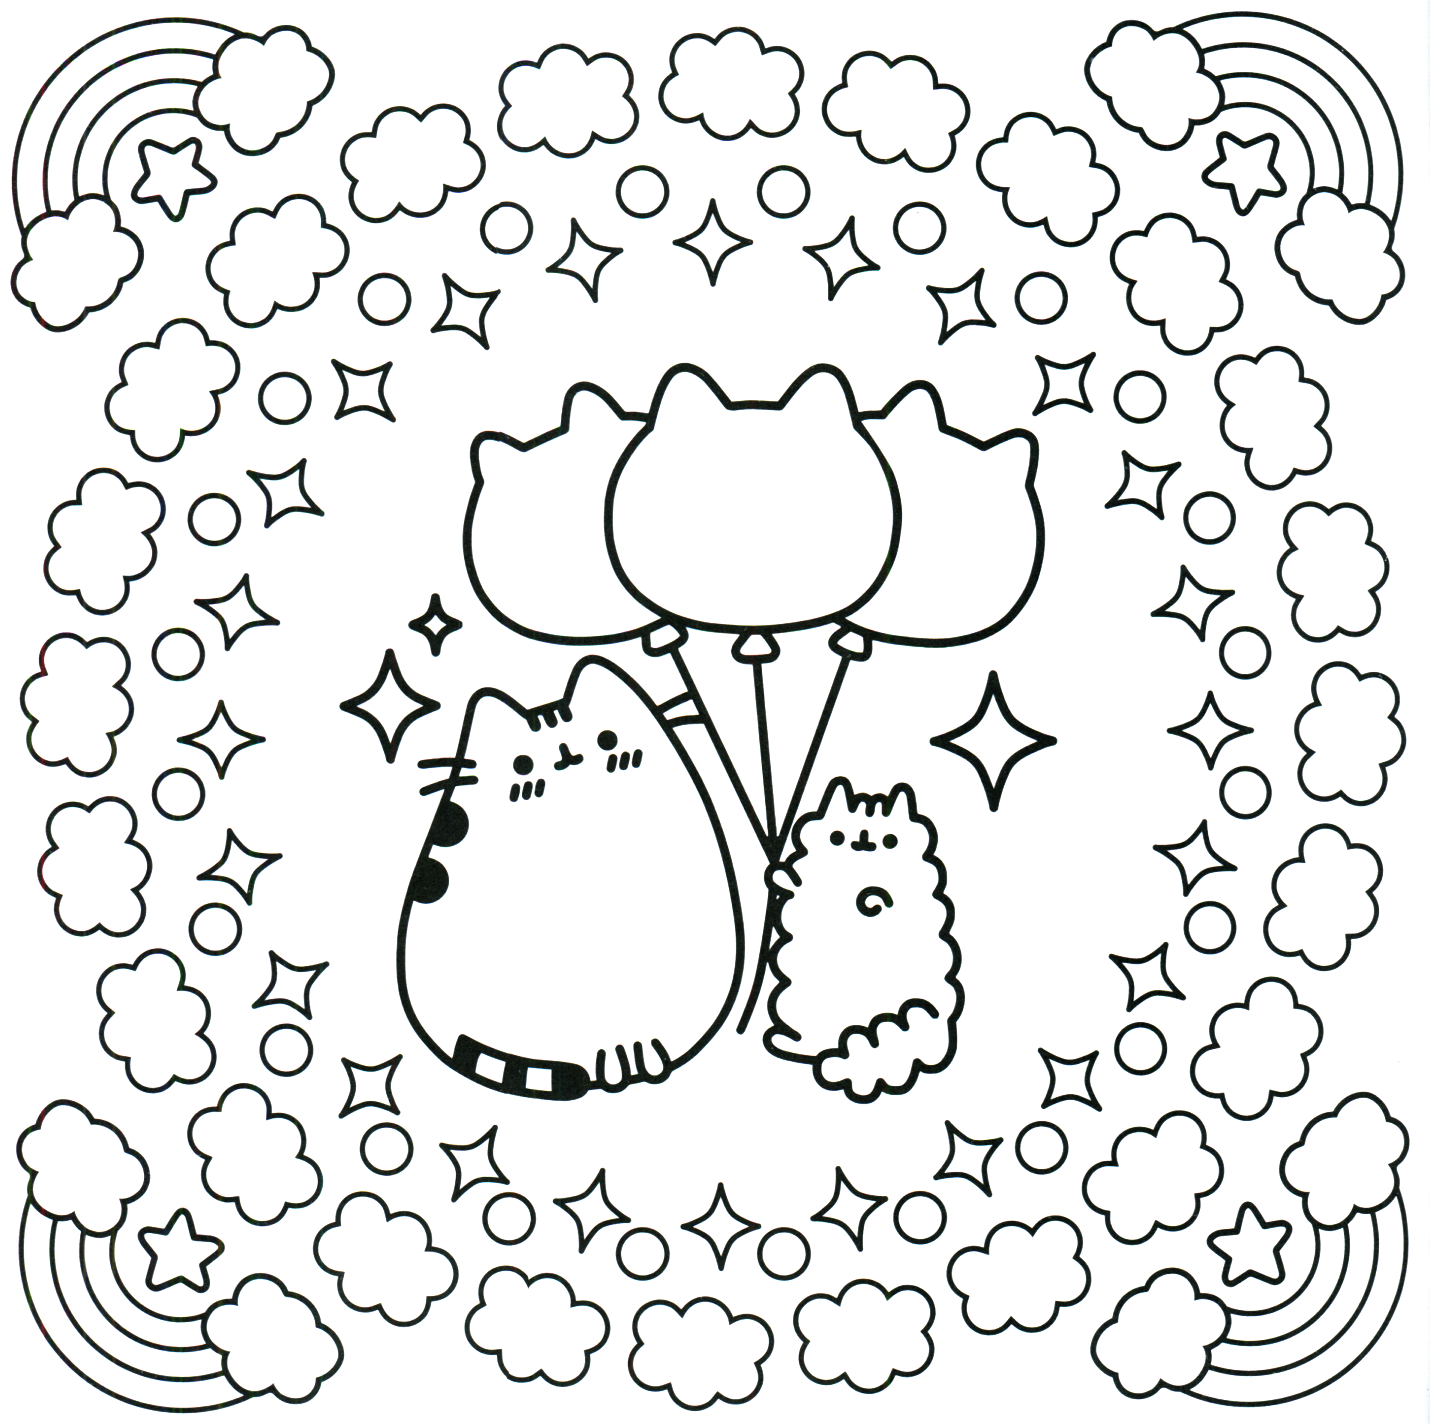 coloring pages of pusheen Pusheen Coloring Pages   Best Coloring Pages For Kids coloring pages of pusheen